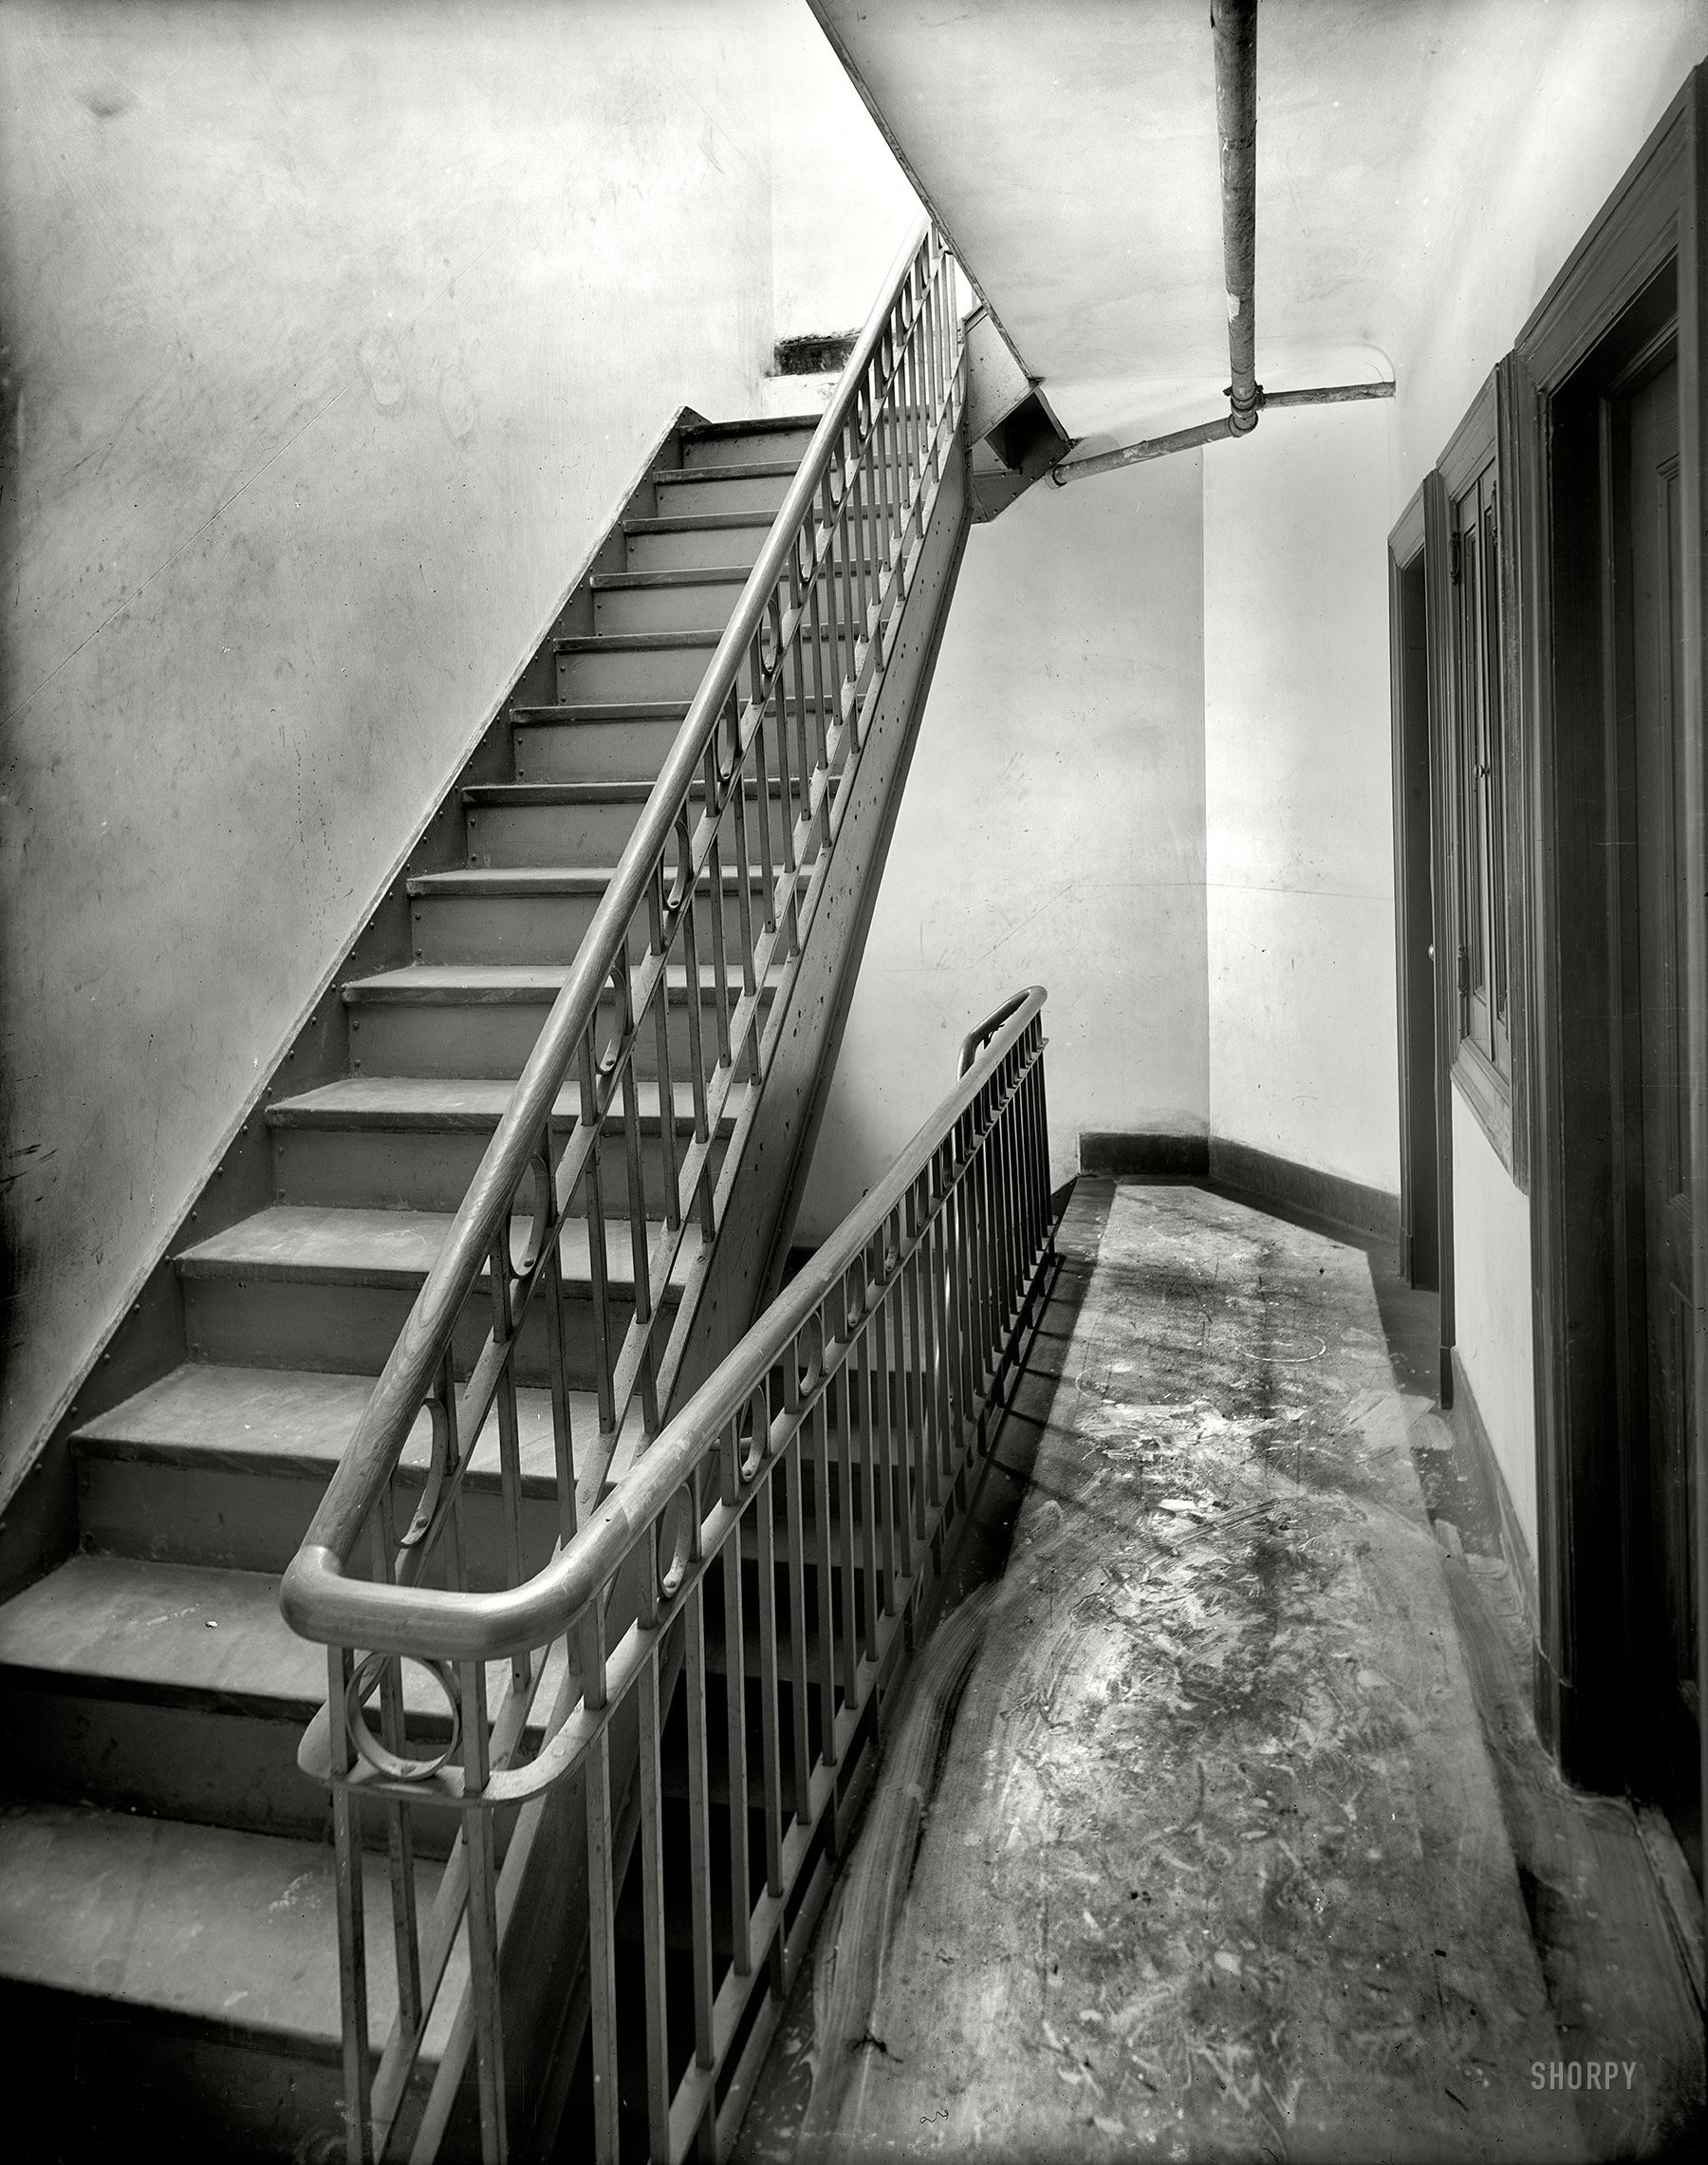 Shorpy Historic Picture Archive :: Tenement Stairs: 1905